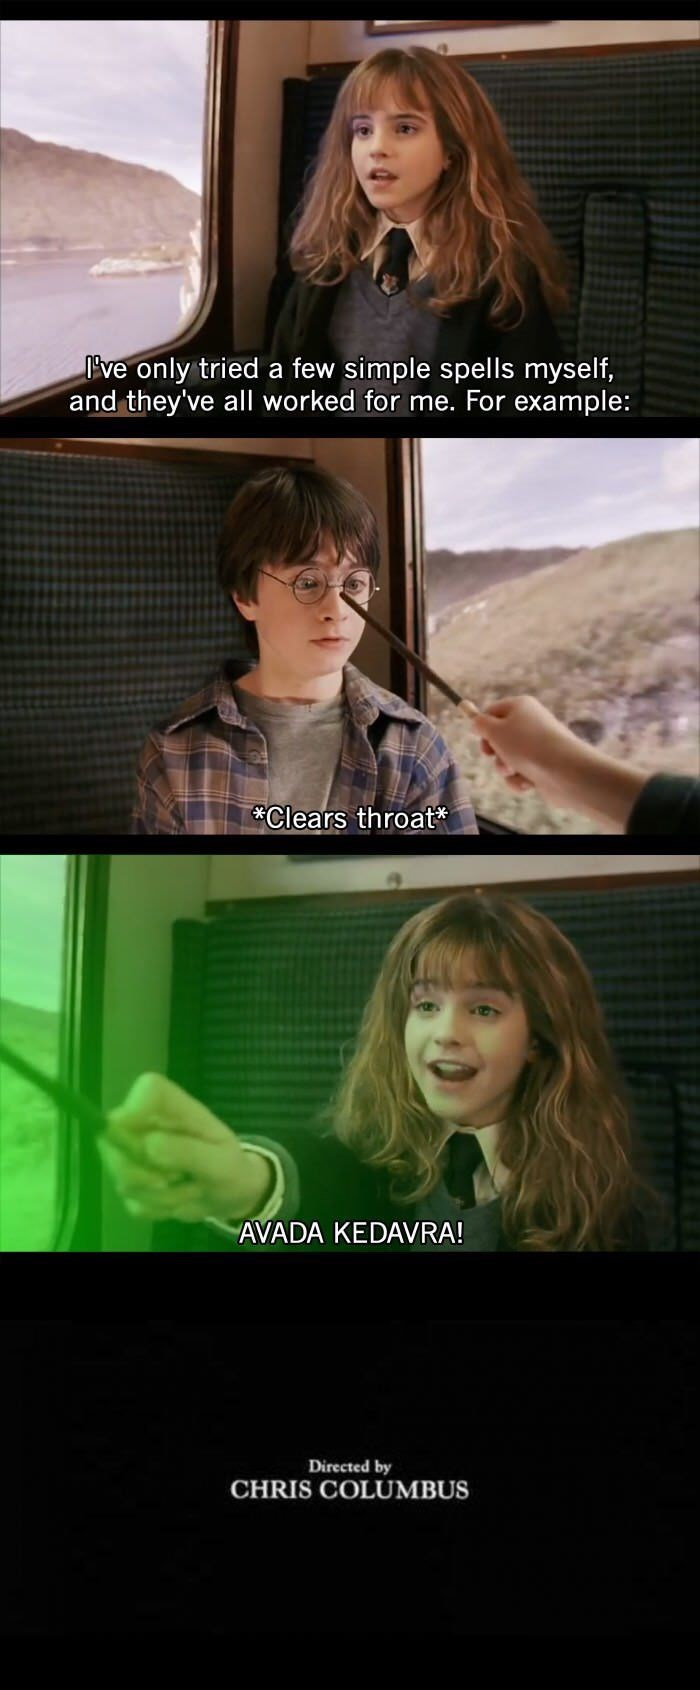 Harry Potter meme of Hermione killing Harry in the first movie and ending the franchise